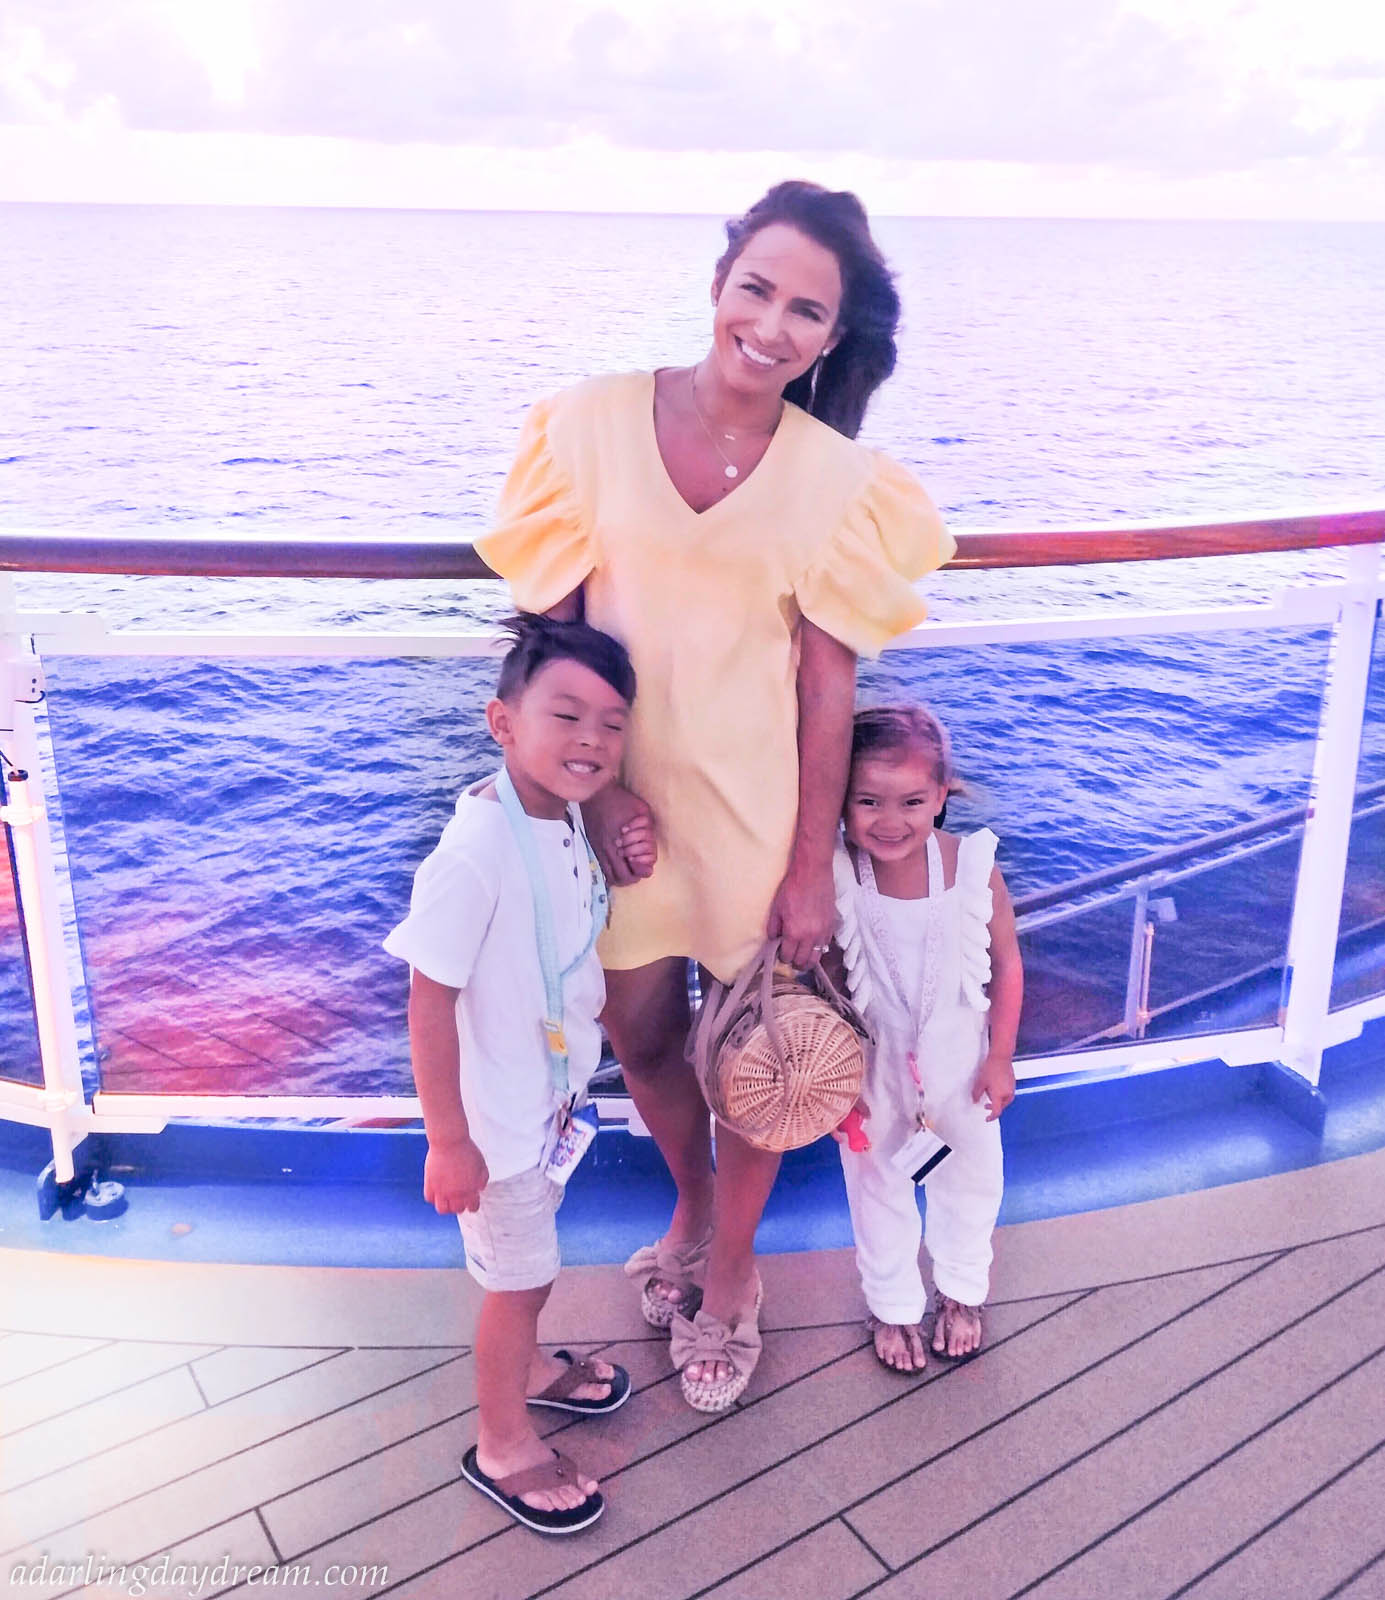 Carnival-Cruise-Travel-Blog-Post-6